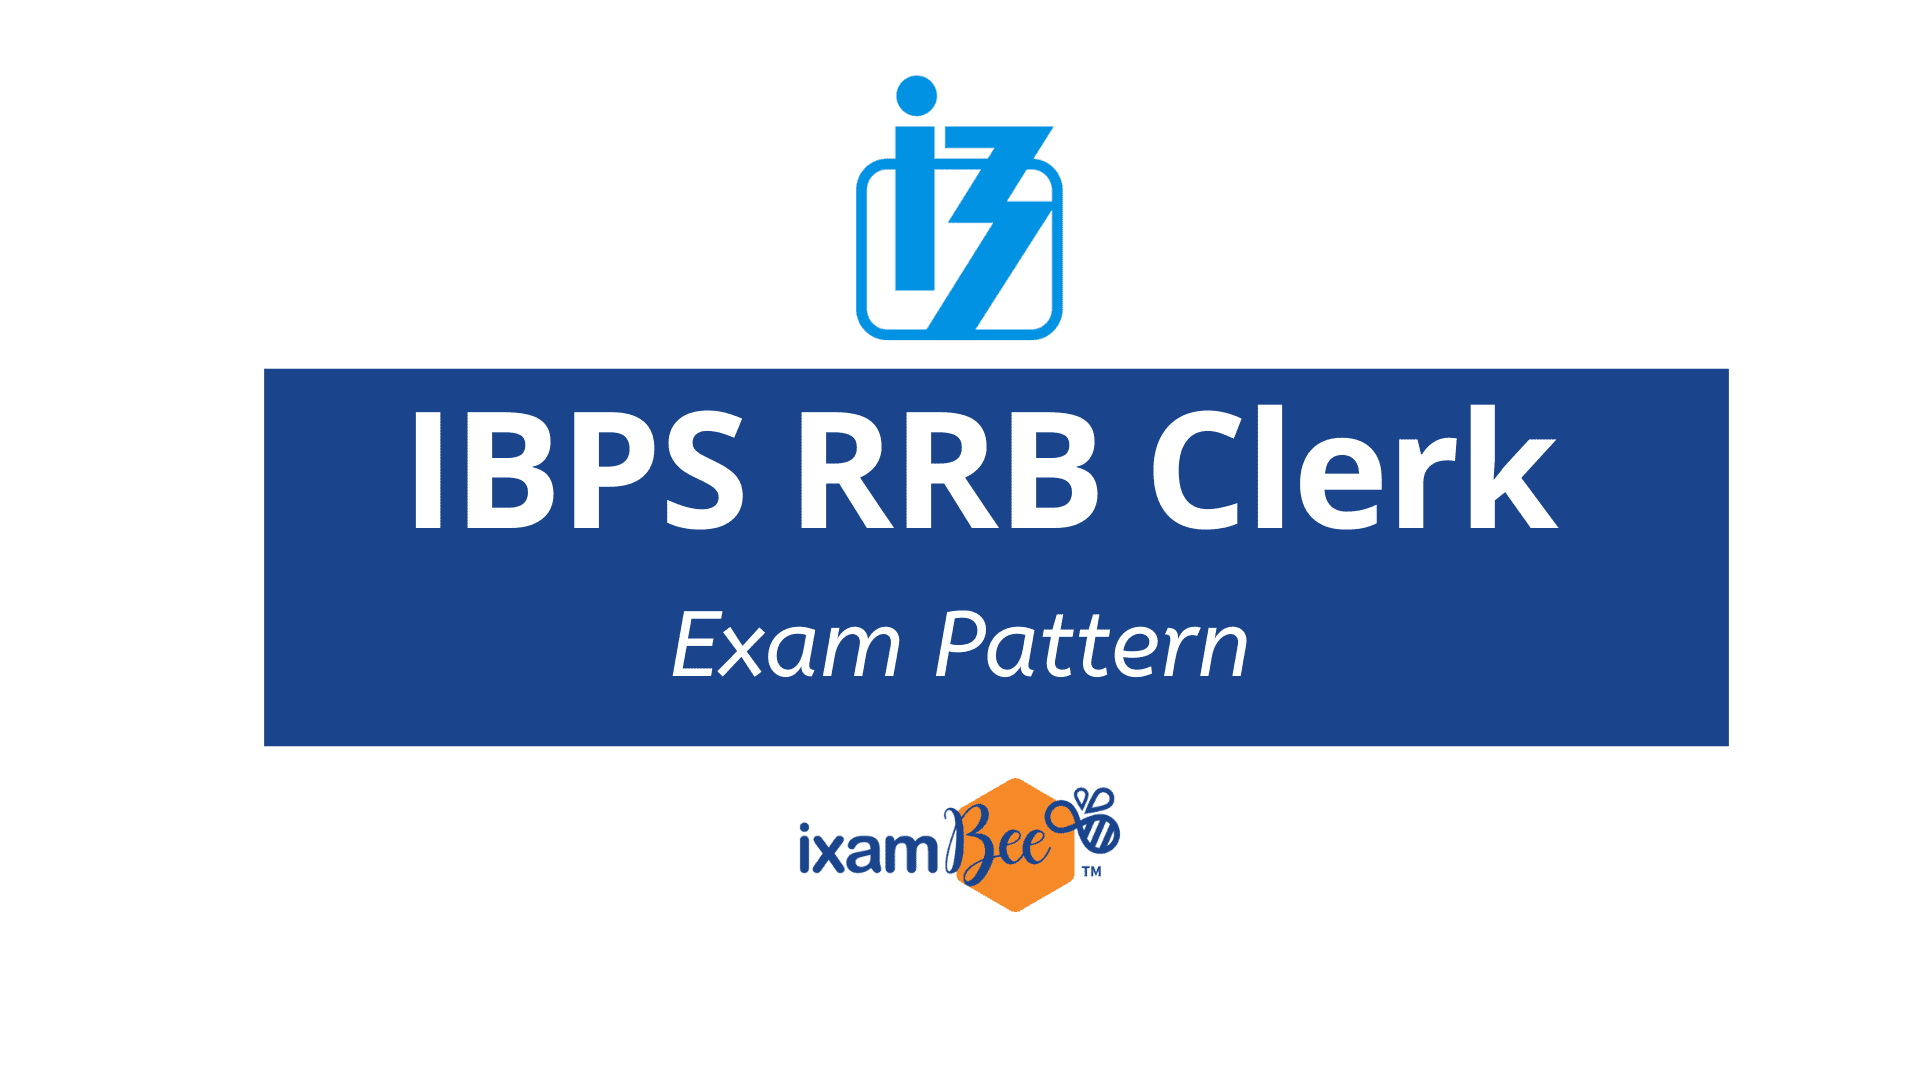 IBPS RRB Group 'B' Office Assistant Exam Pattern